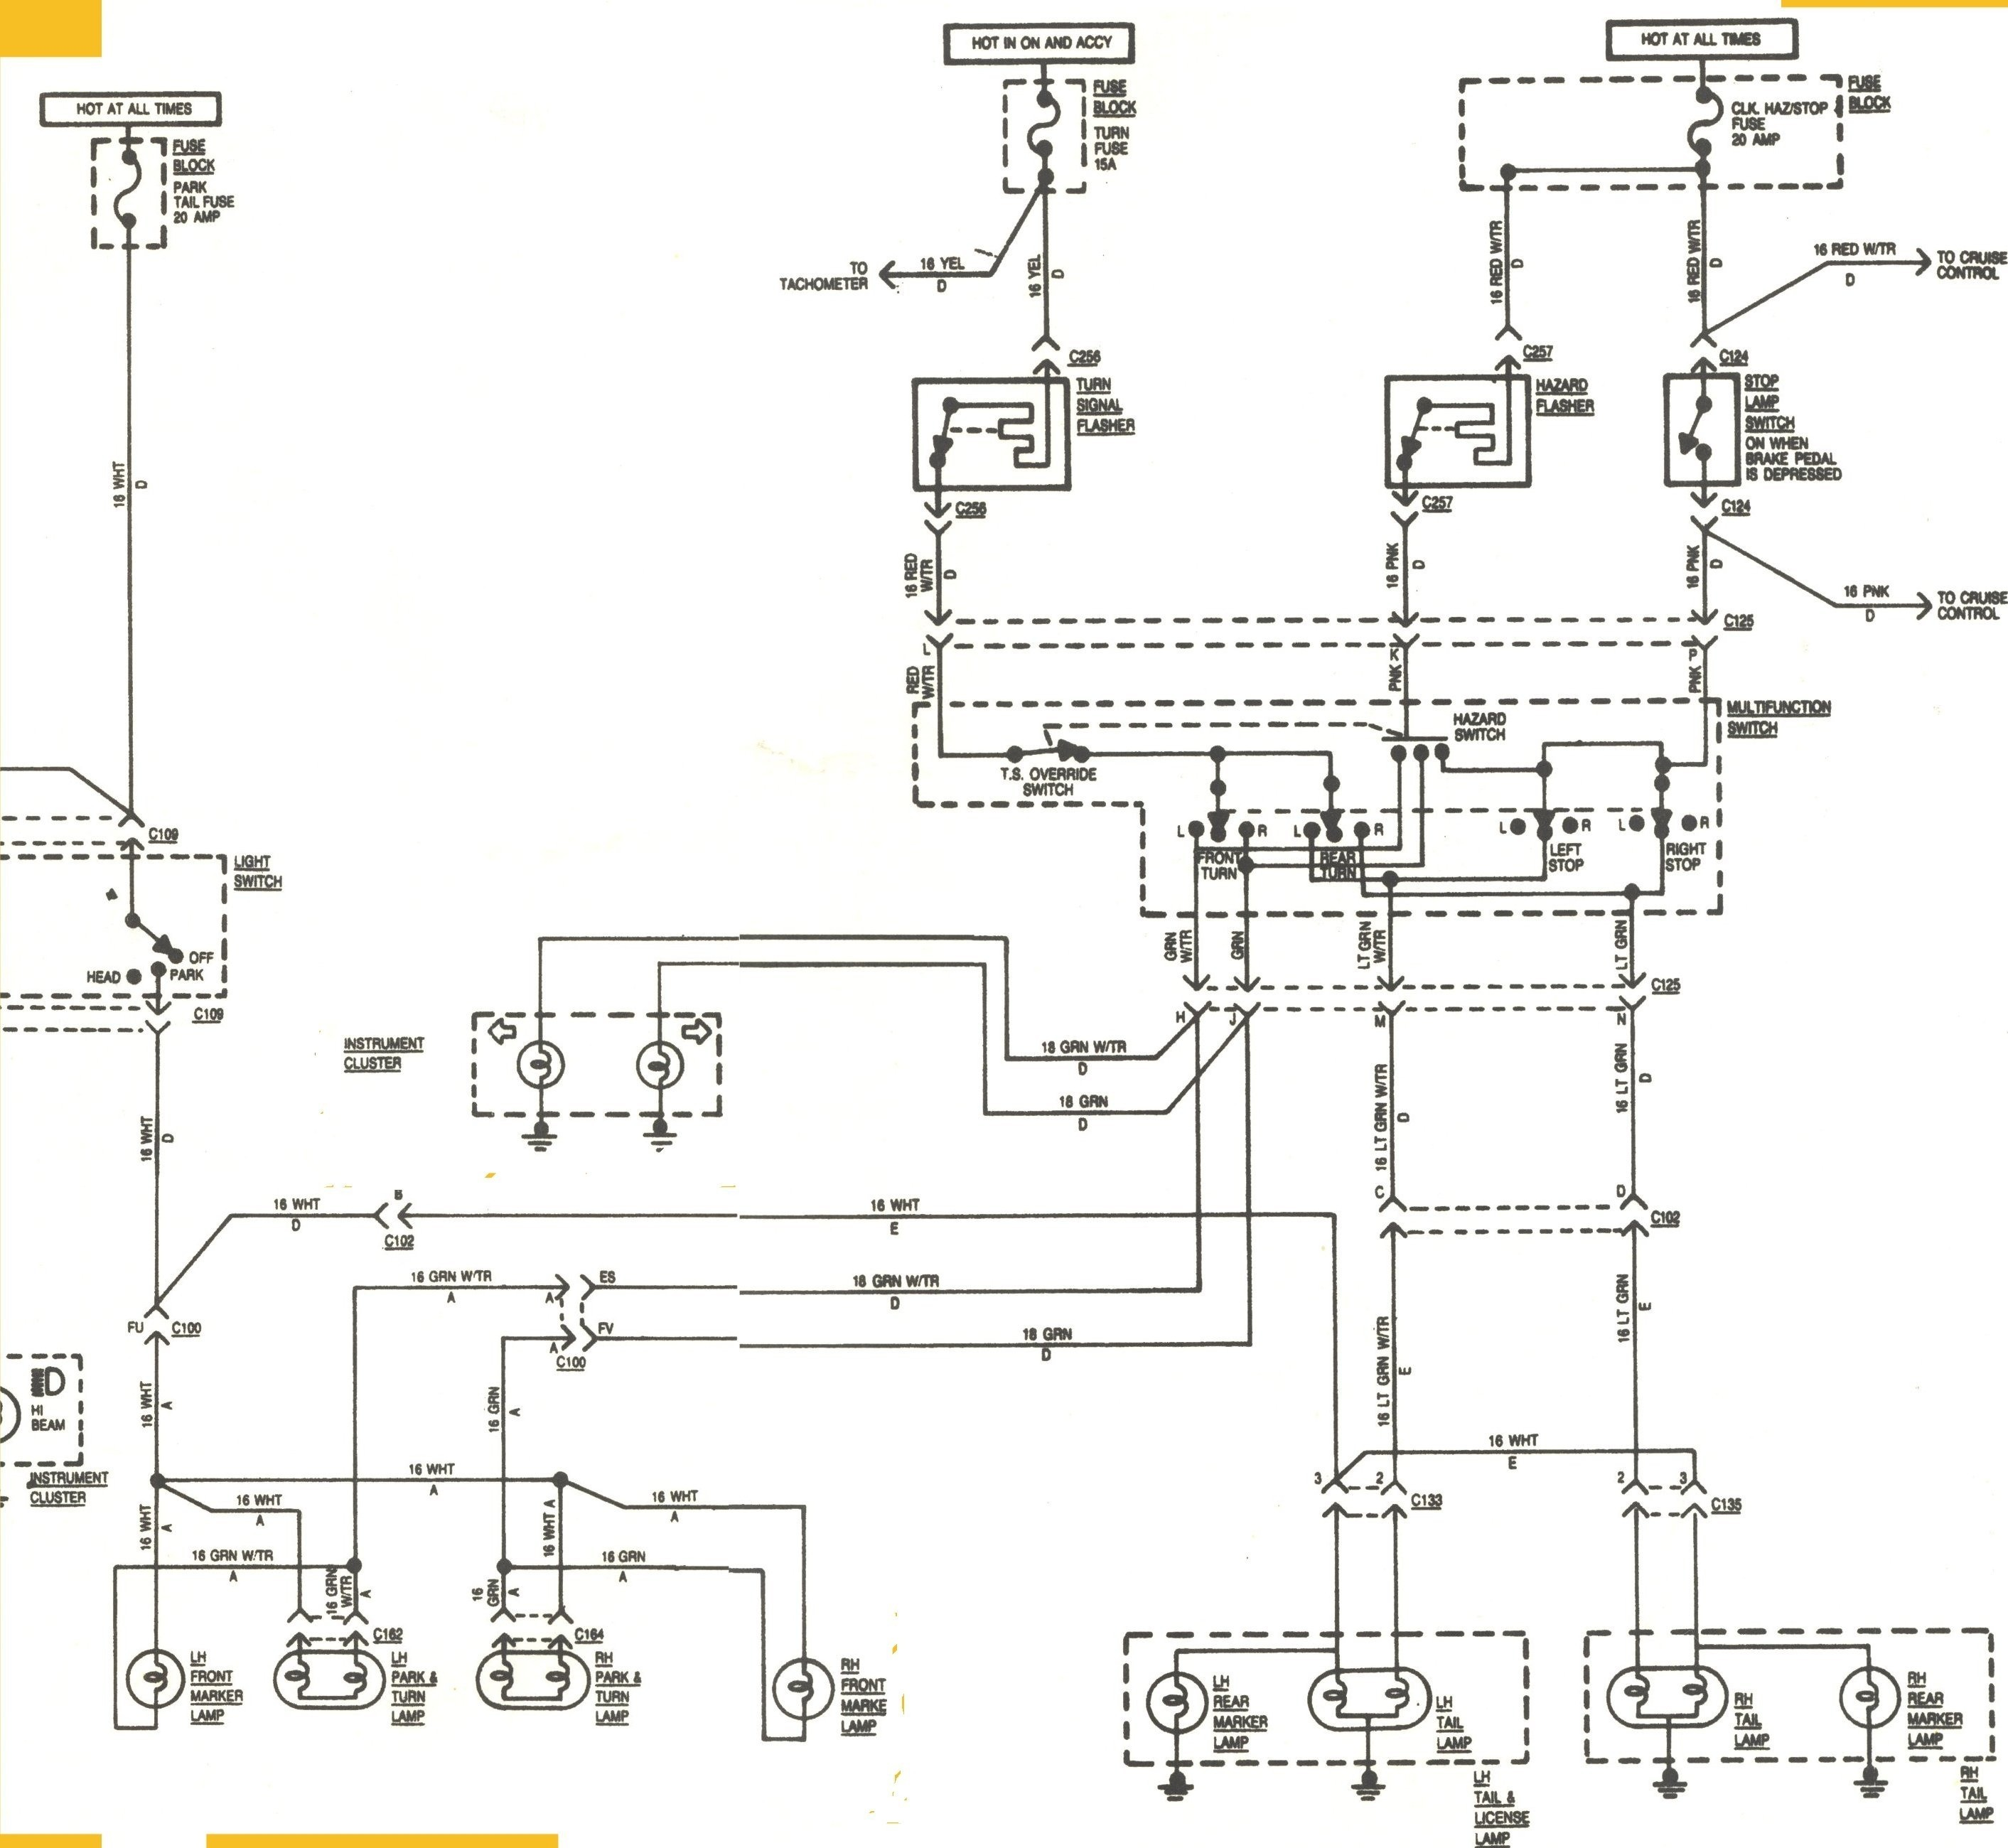 Turn Signal Switch Diagram Awesome Turn Signal Switch Wiring Diagram Ideas Everything You Of Turn Signal Switch Diagram